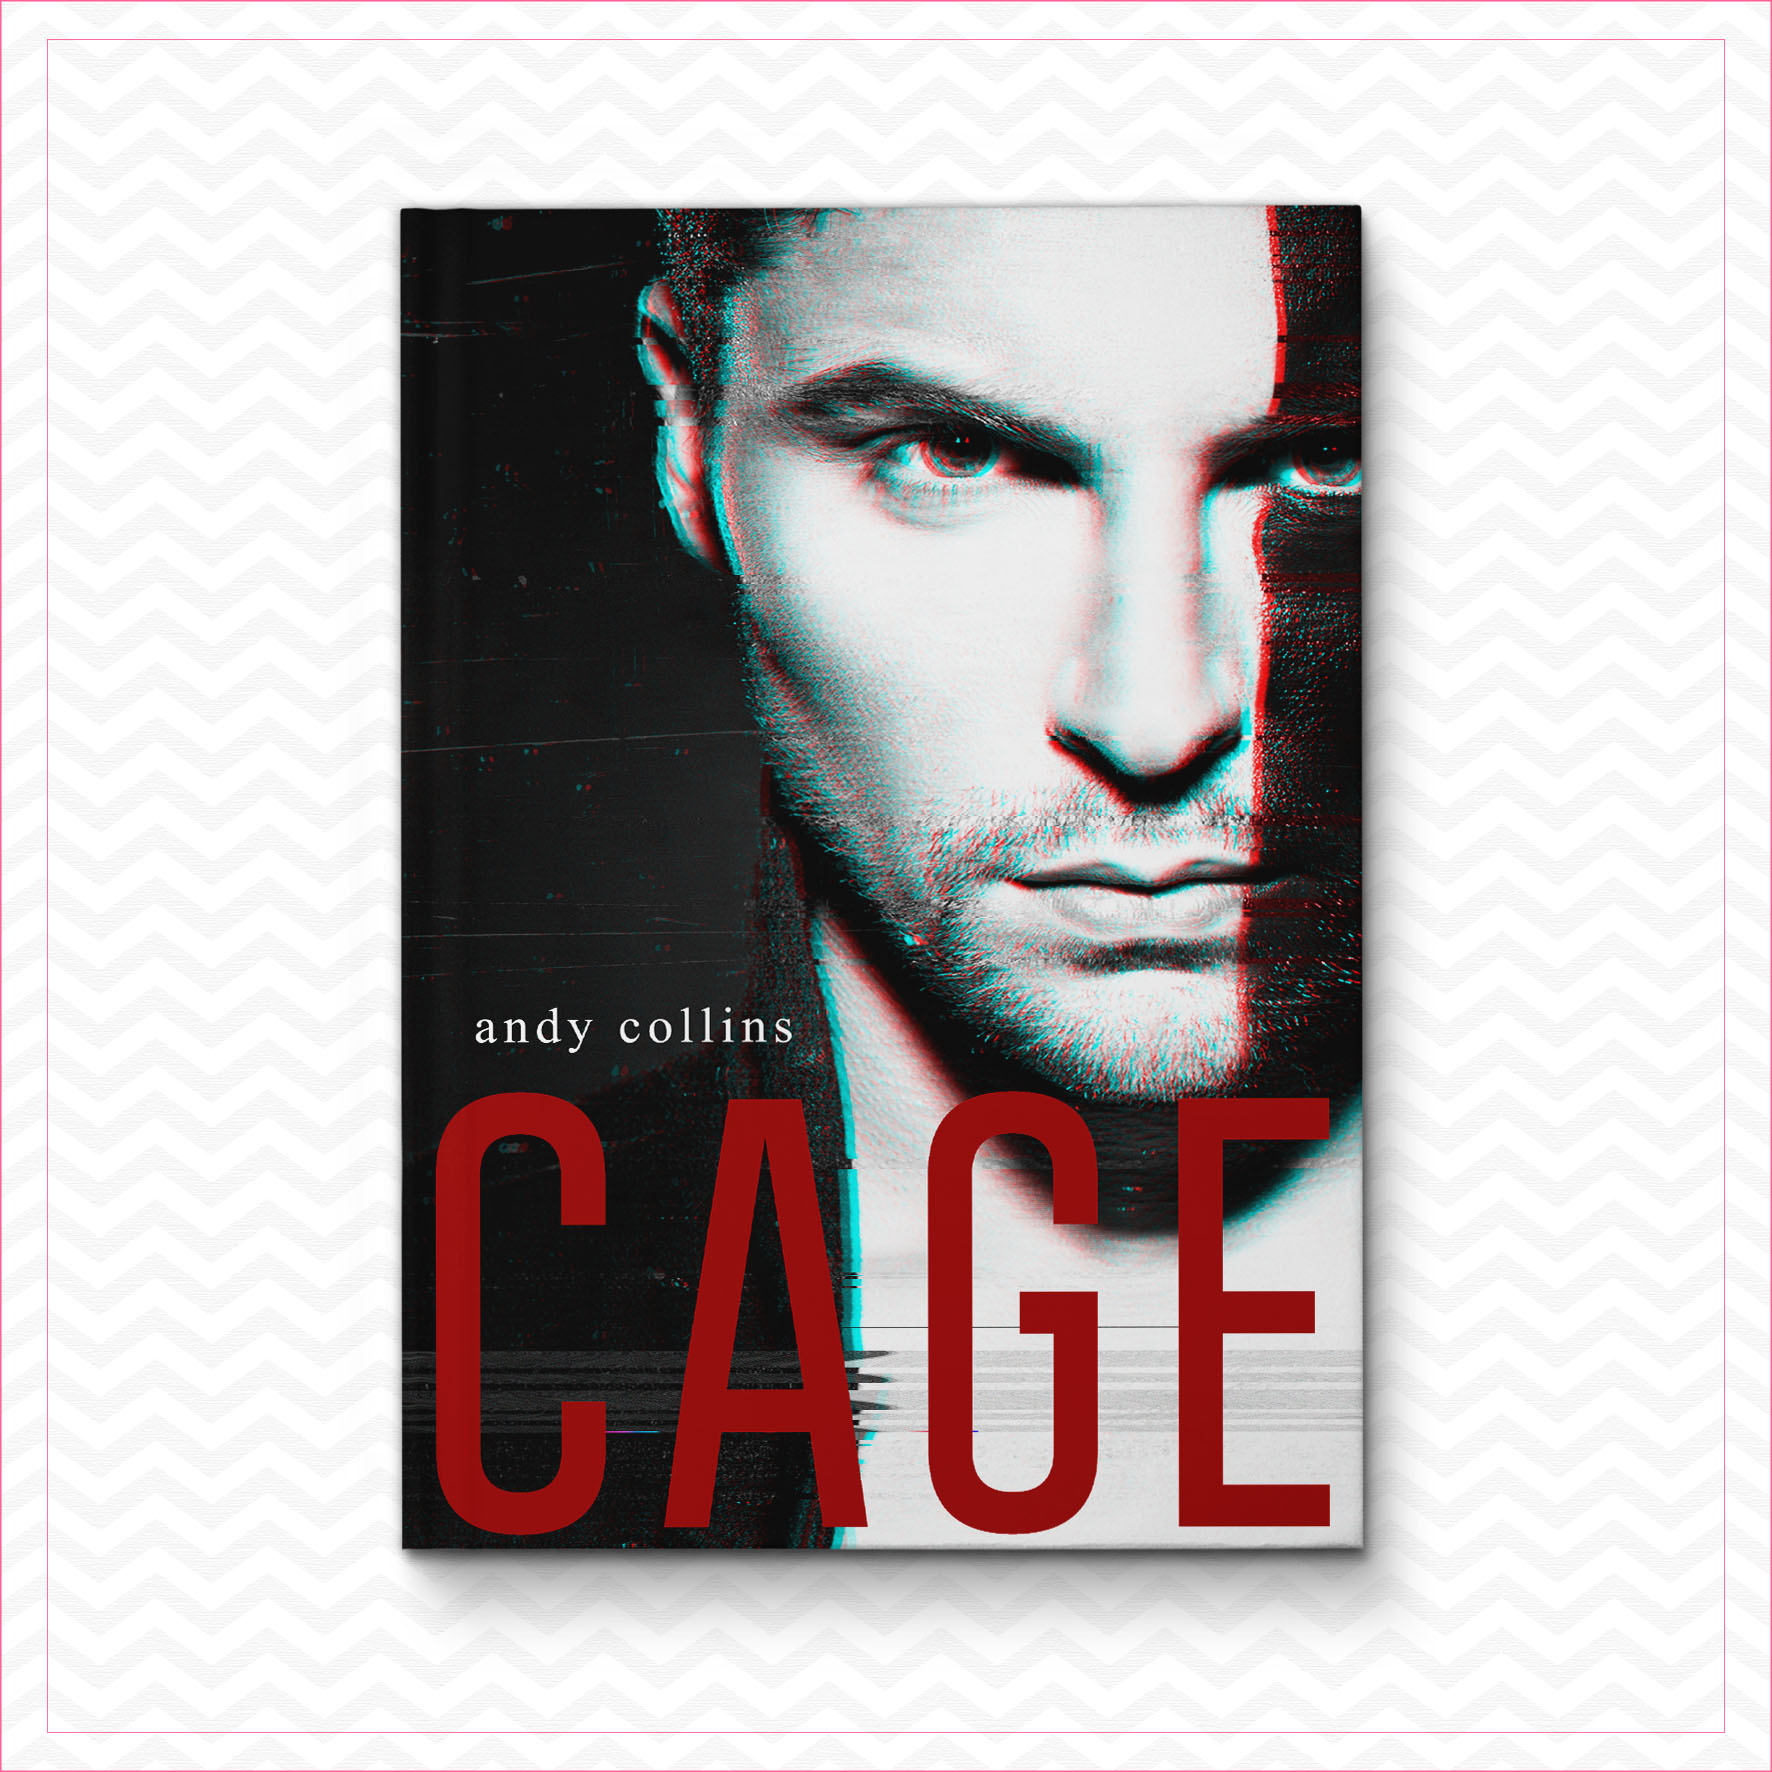 Cage – Andy Collins